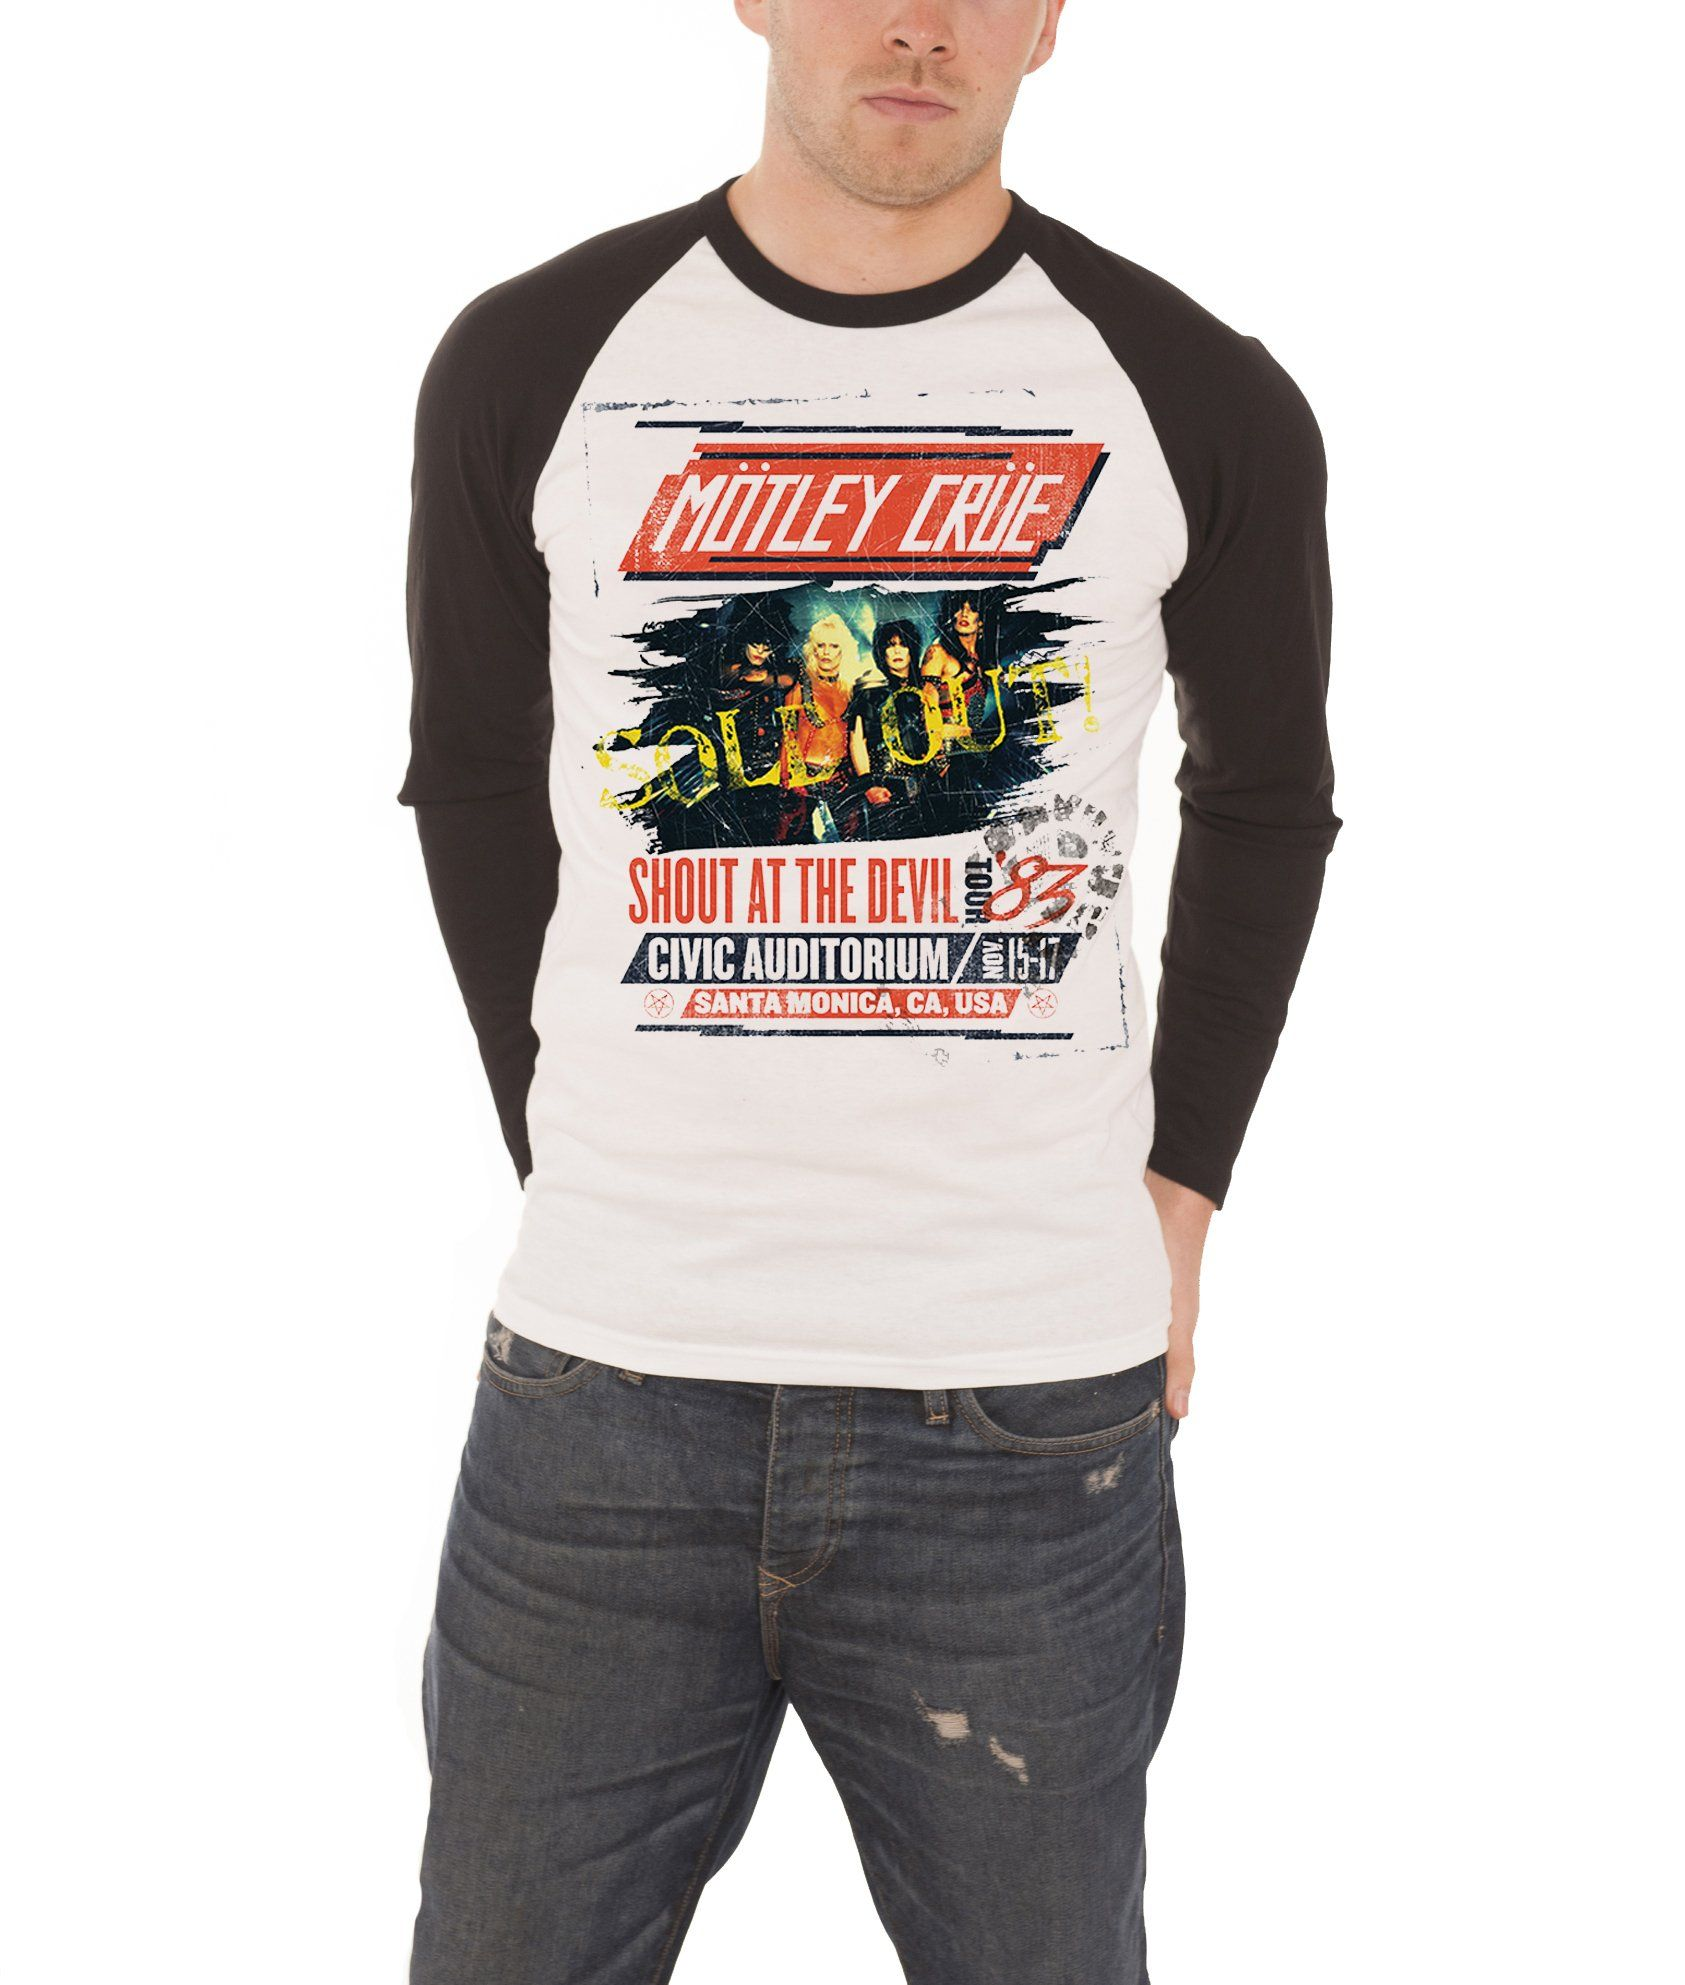 ea38919325f Motley Crue Shout at the devil Tour Poster Official Mens New Baseball Shirt